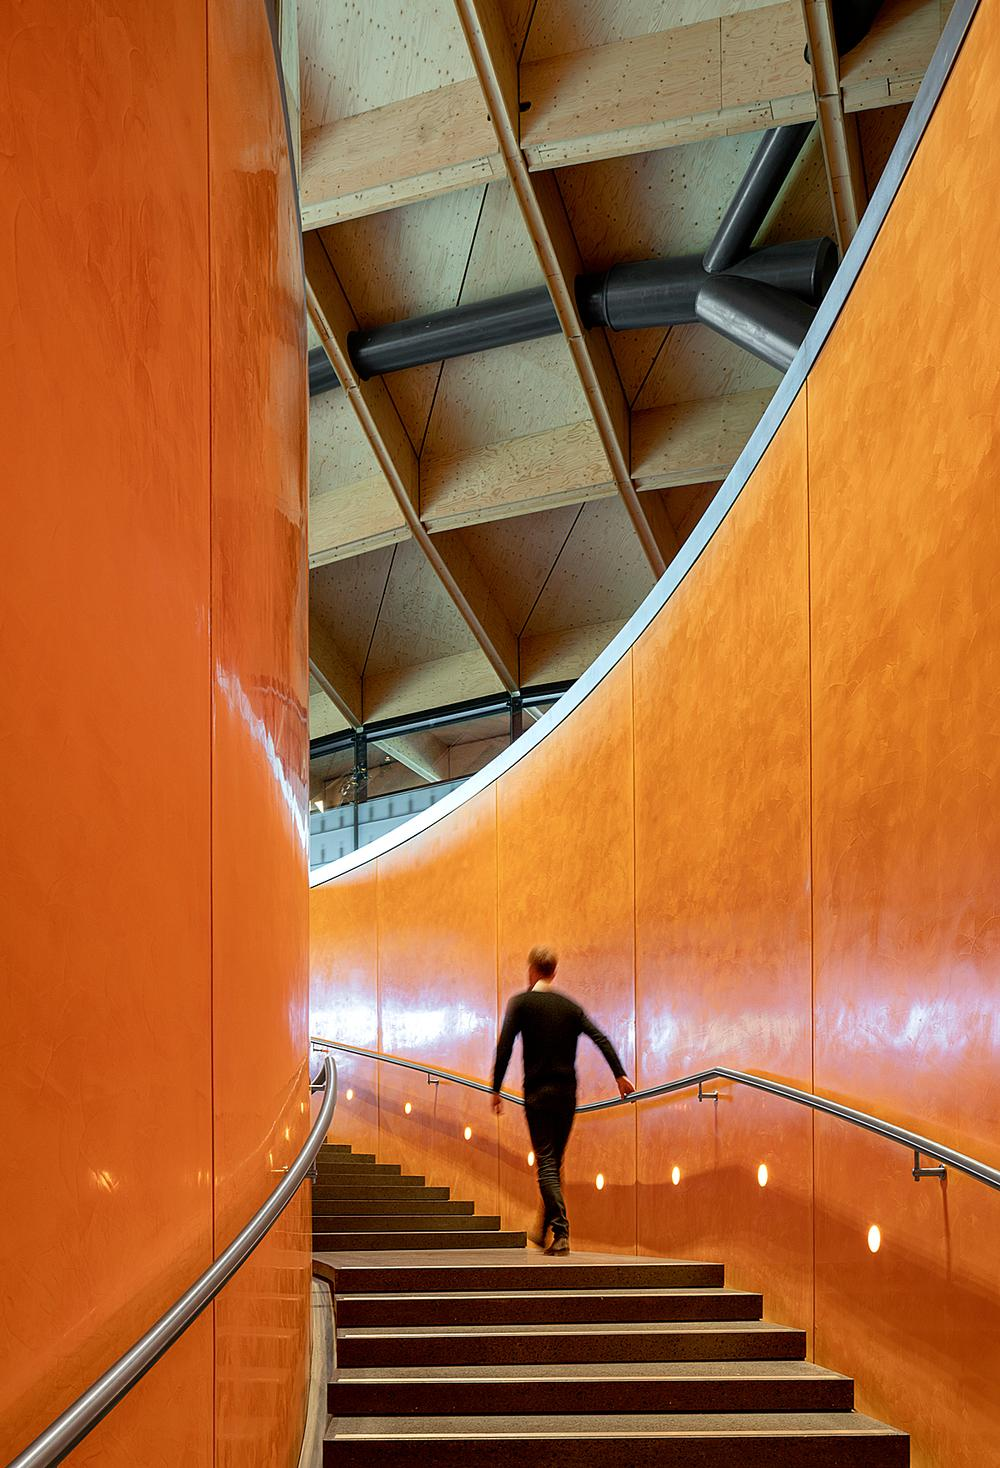 The Macallan Distillery has been shortlisted for the RIBA Stirling Prize / Photo: ©Joas Souza